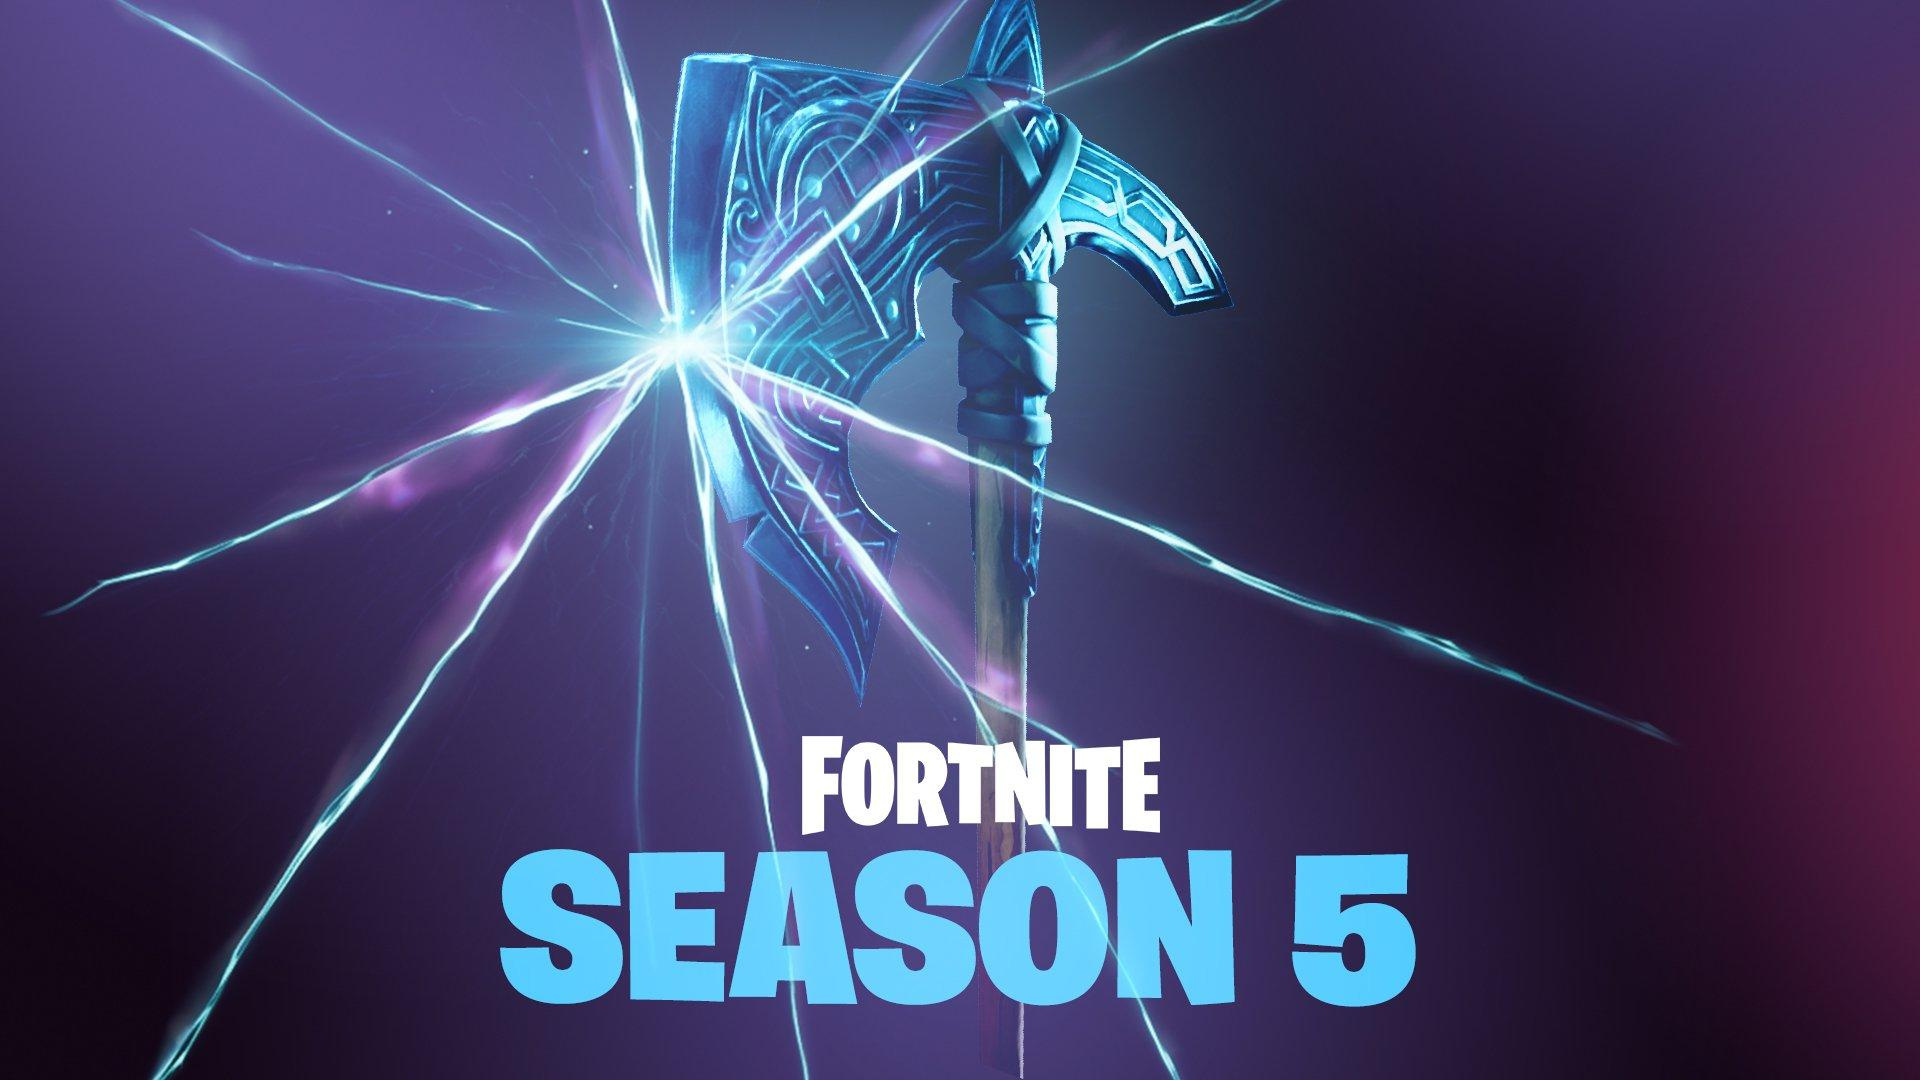 Fortnite Week 6 Challenges   Season 5 Battle Pass  Drift   Road Trip     Grab yourself a Battle Pass in Fortnite and you can take on a bunch of  Weekly Challenges that not only give you a perfect excuse to play  but  provide you